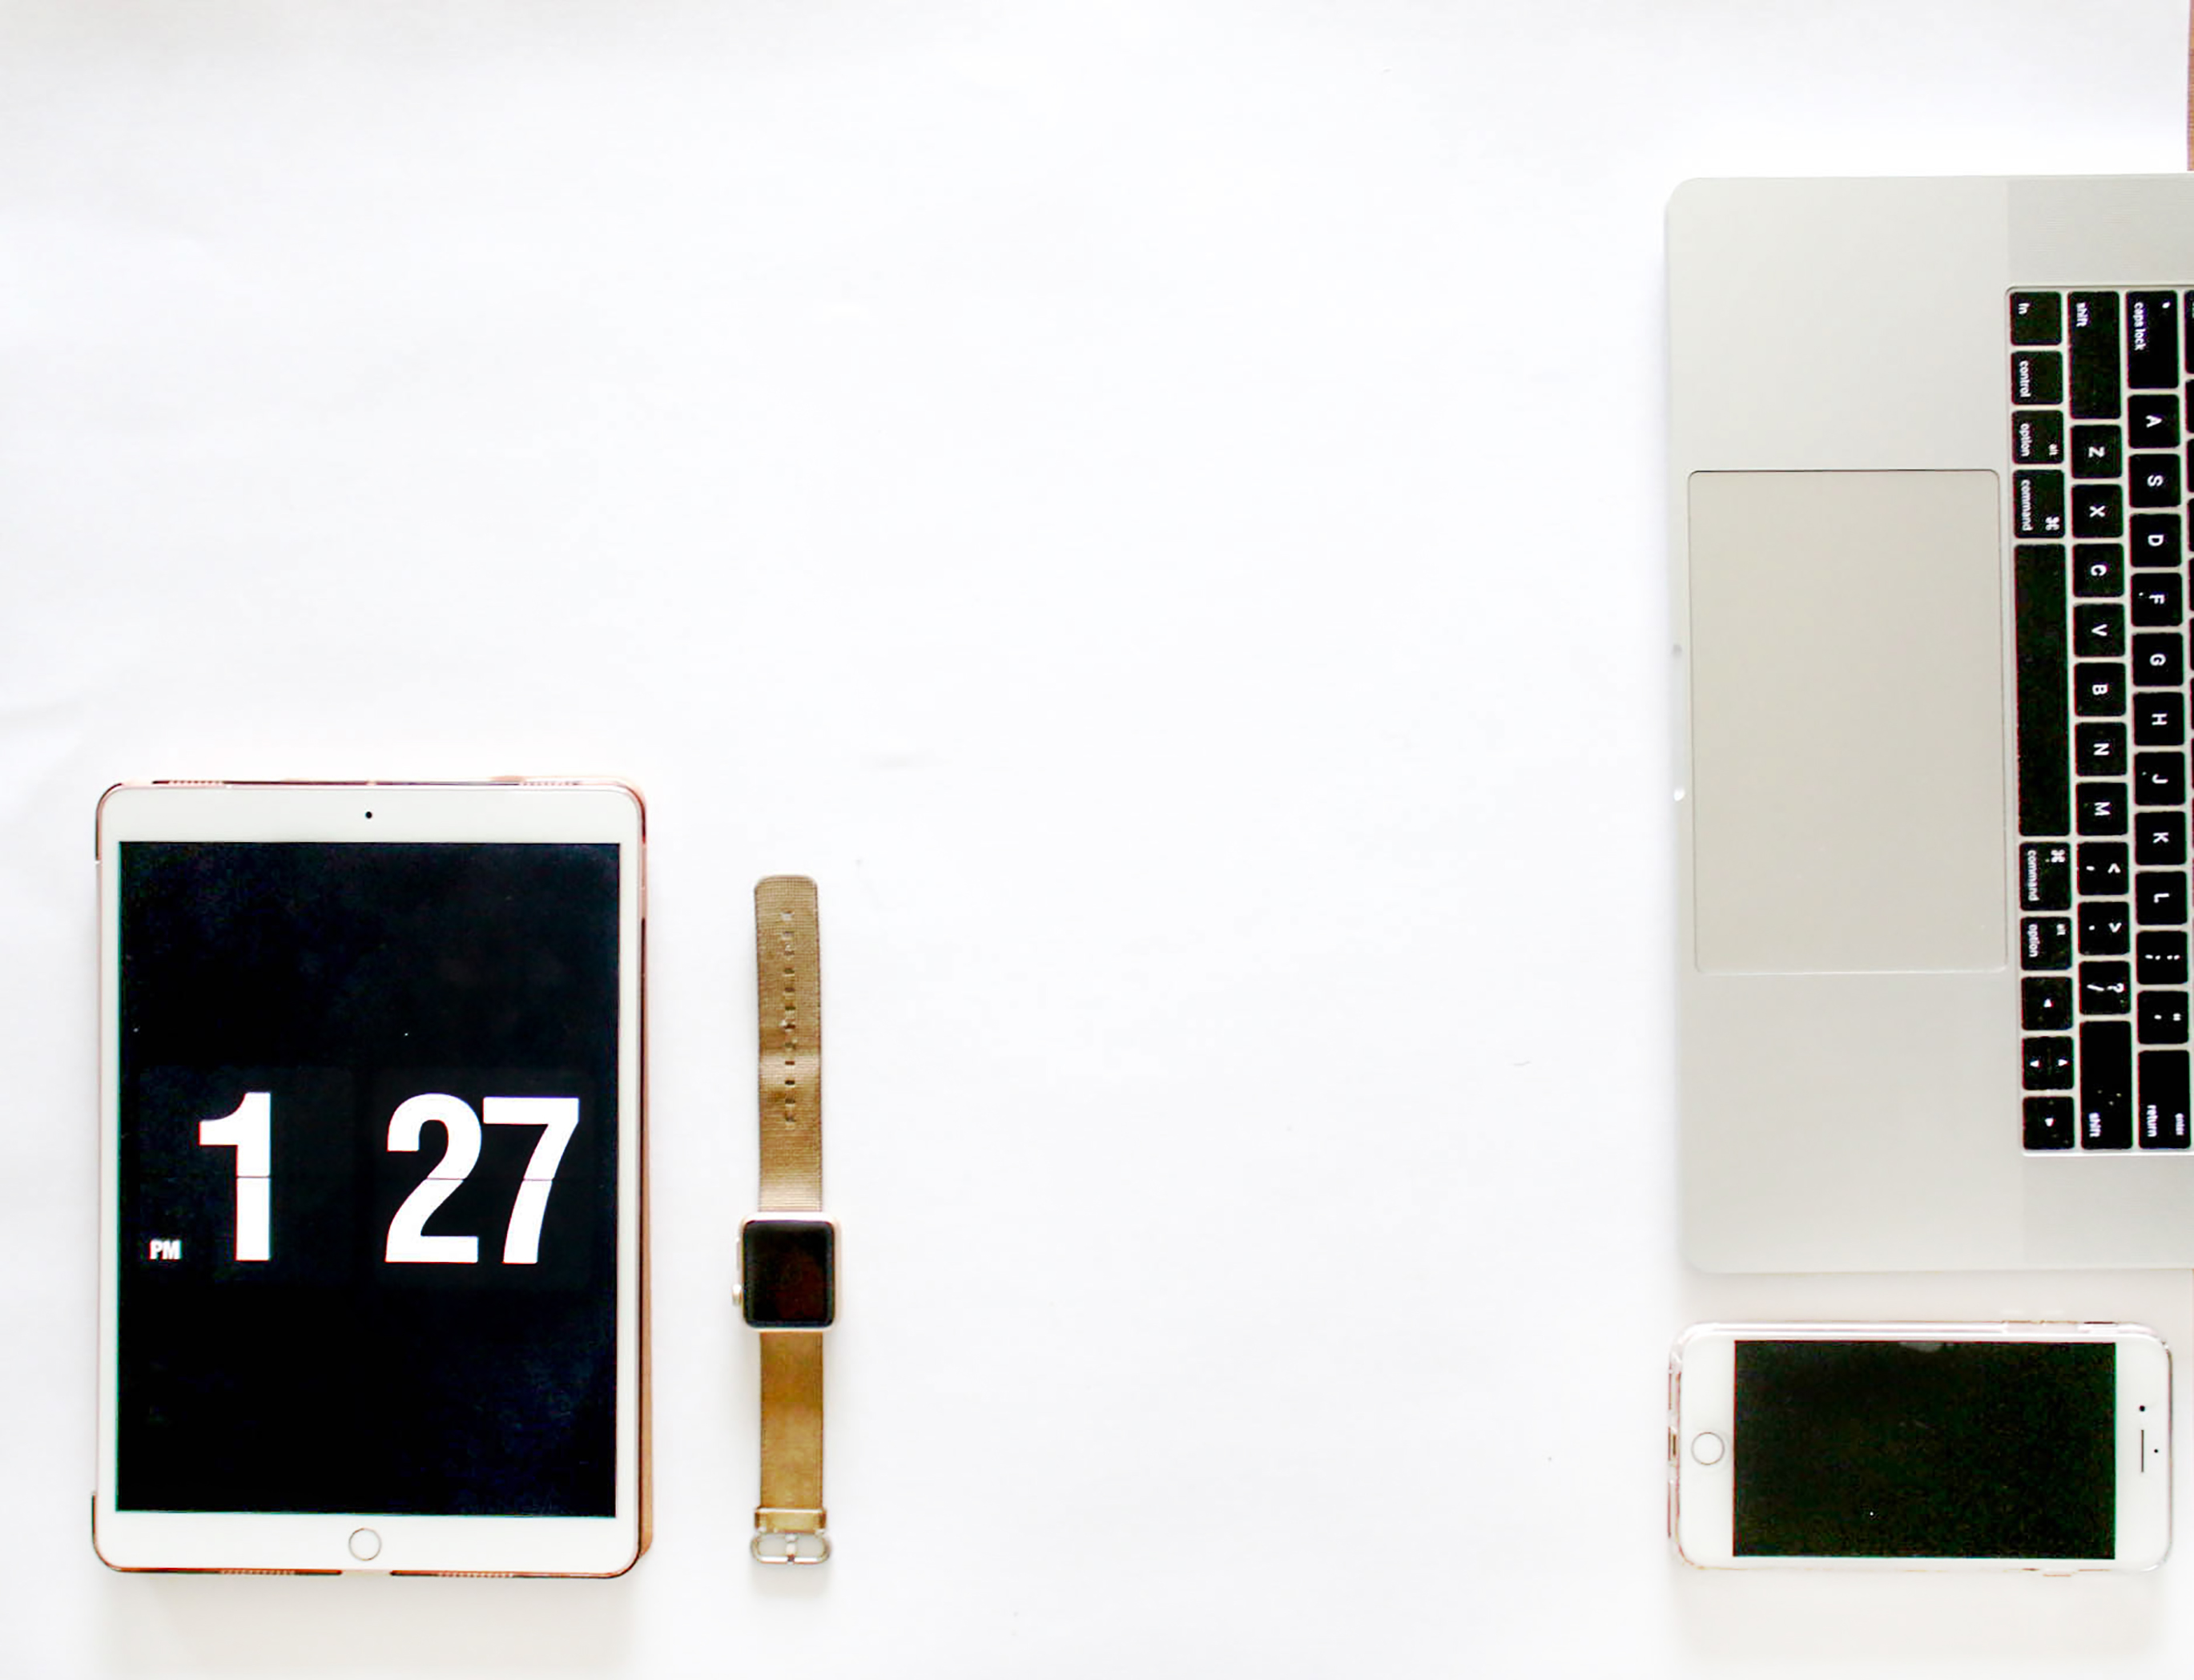 Gold Ipad Pro Beside Gold Aluminum Case Apple Watch With Gold Sport Band